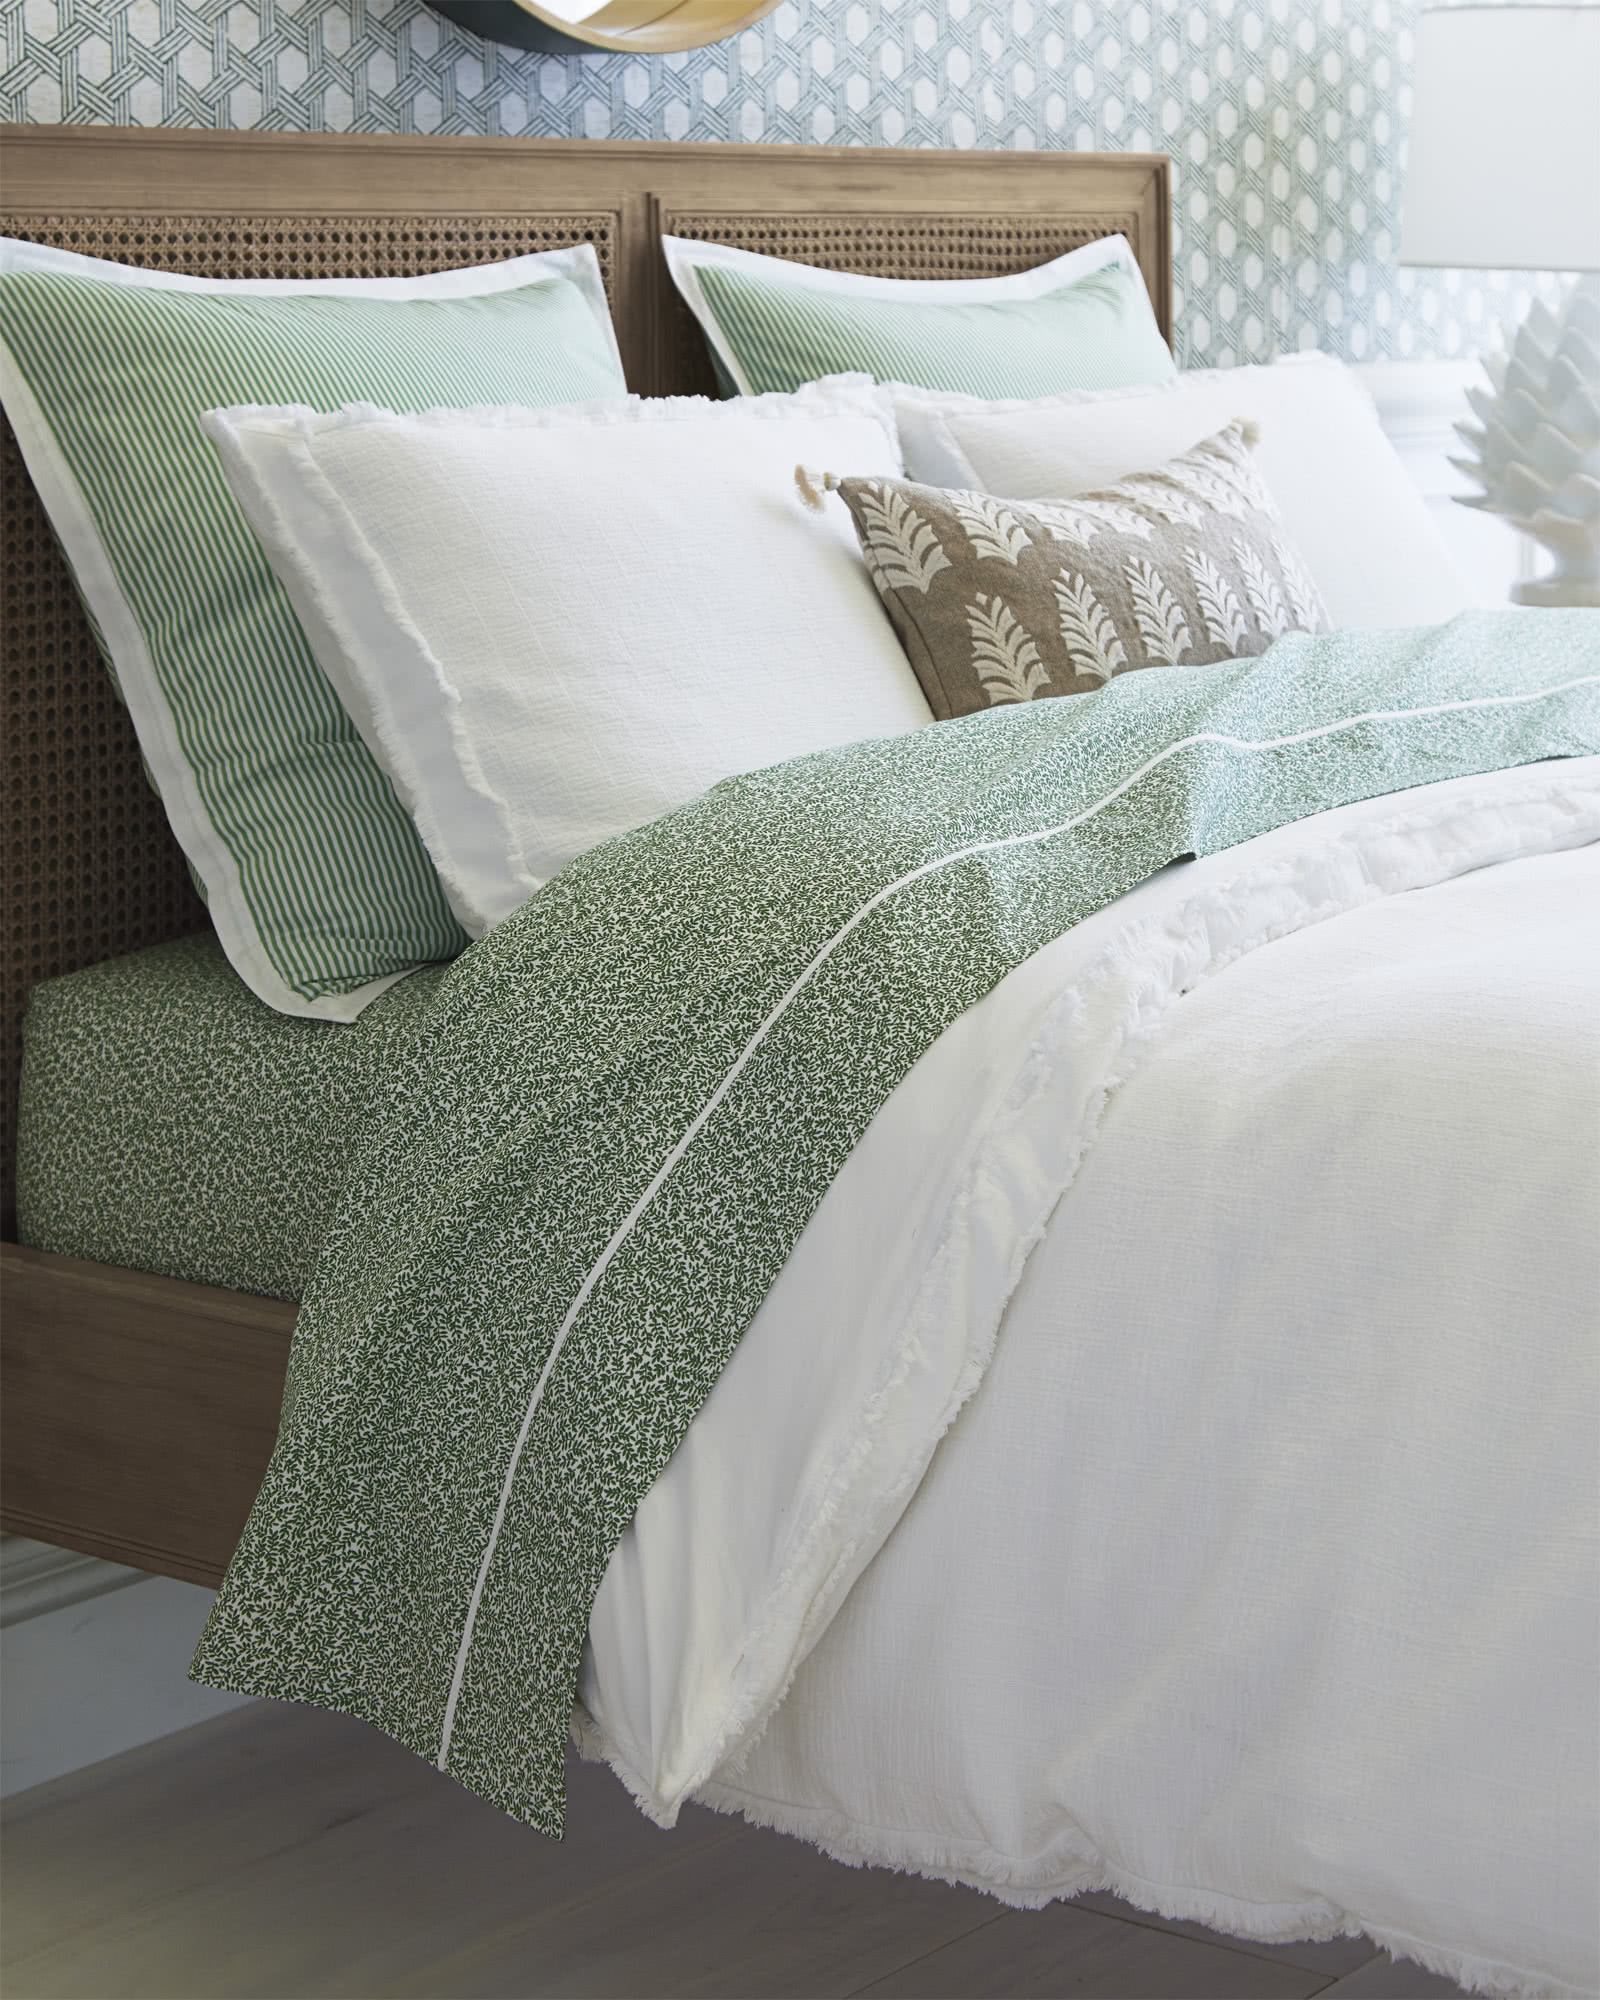 Harbour Cane Bed Beds Amp Headboards Serena And Lily